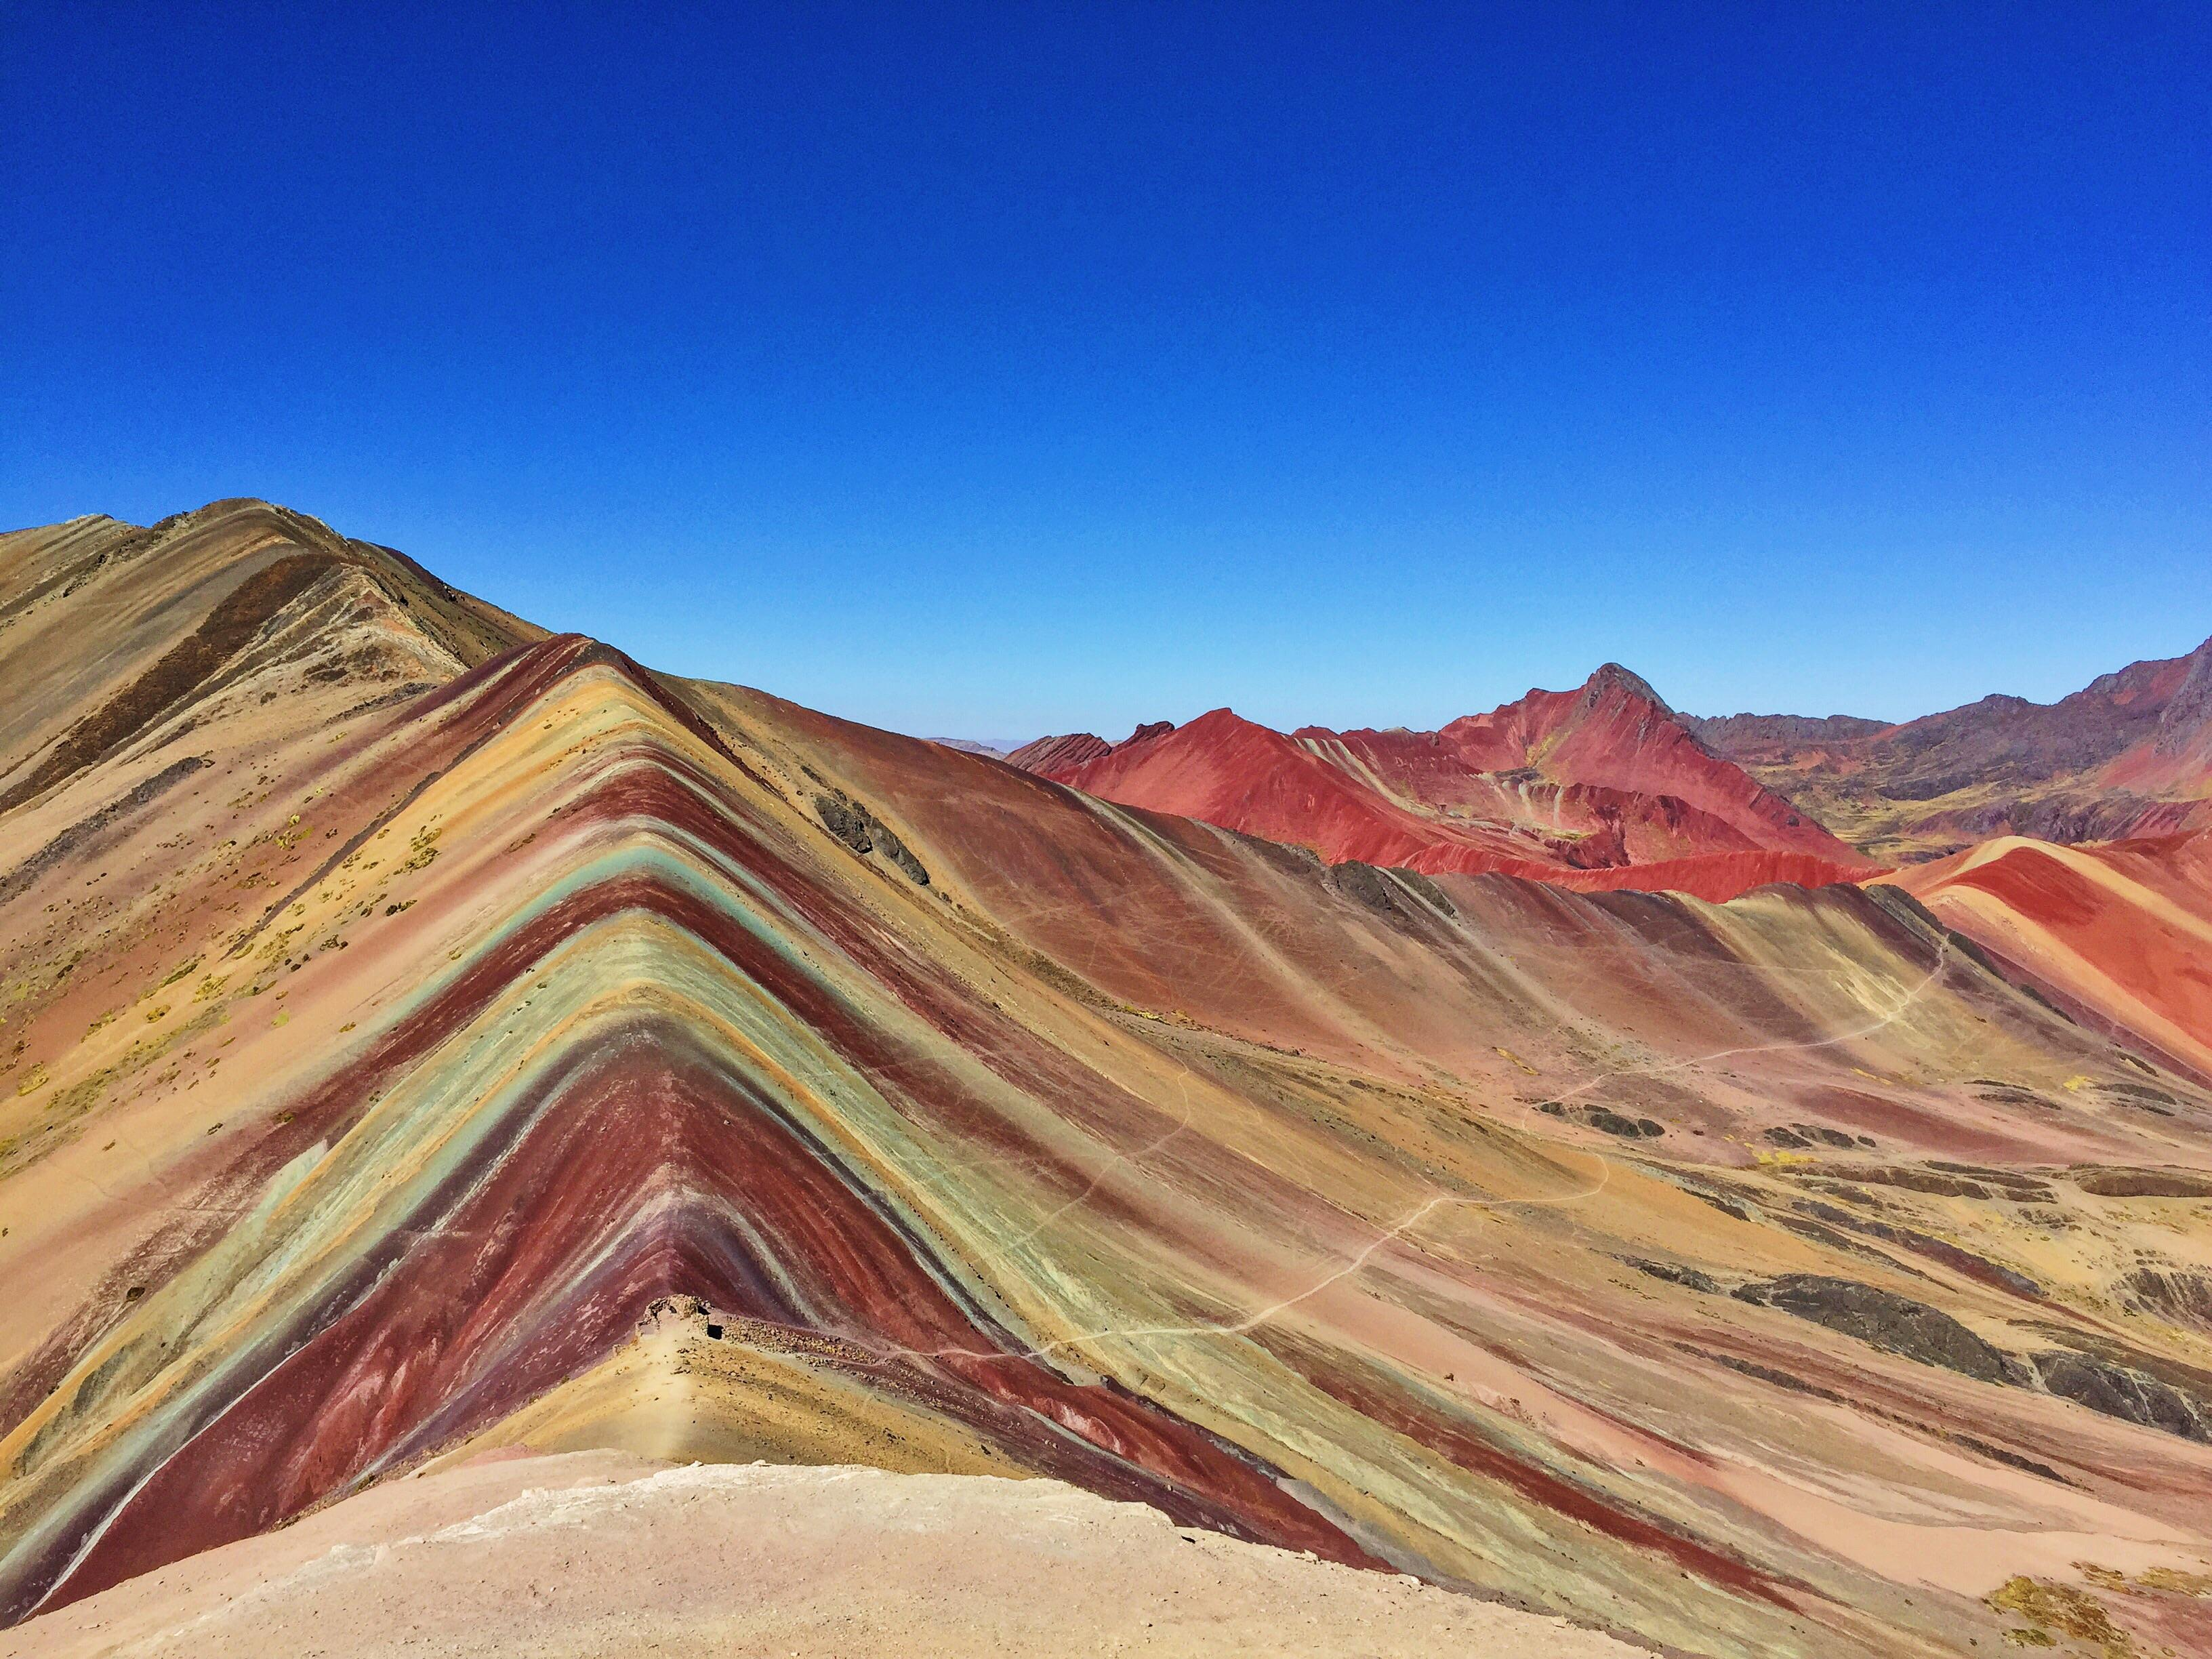 Netherlands Fall Wallpaper Vinicunca Peru On A Perfectly Clear Day Oc 3264 X